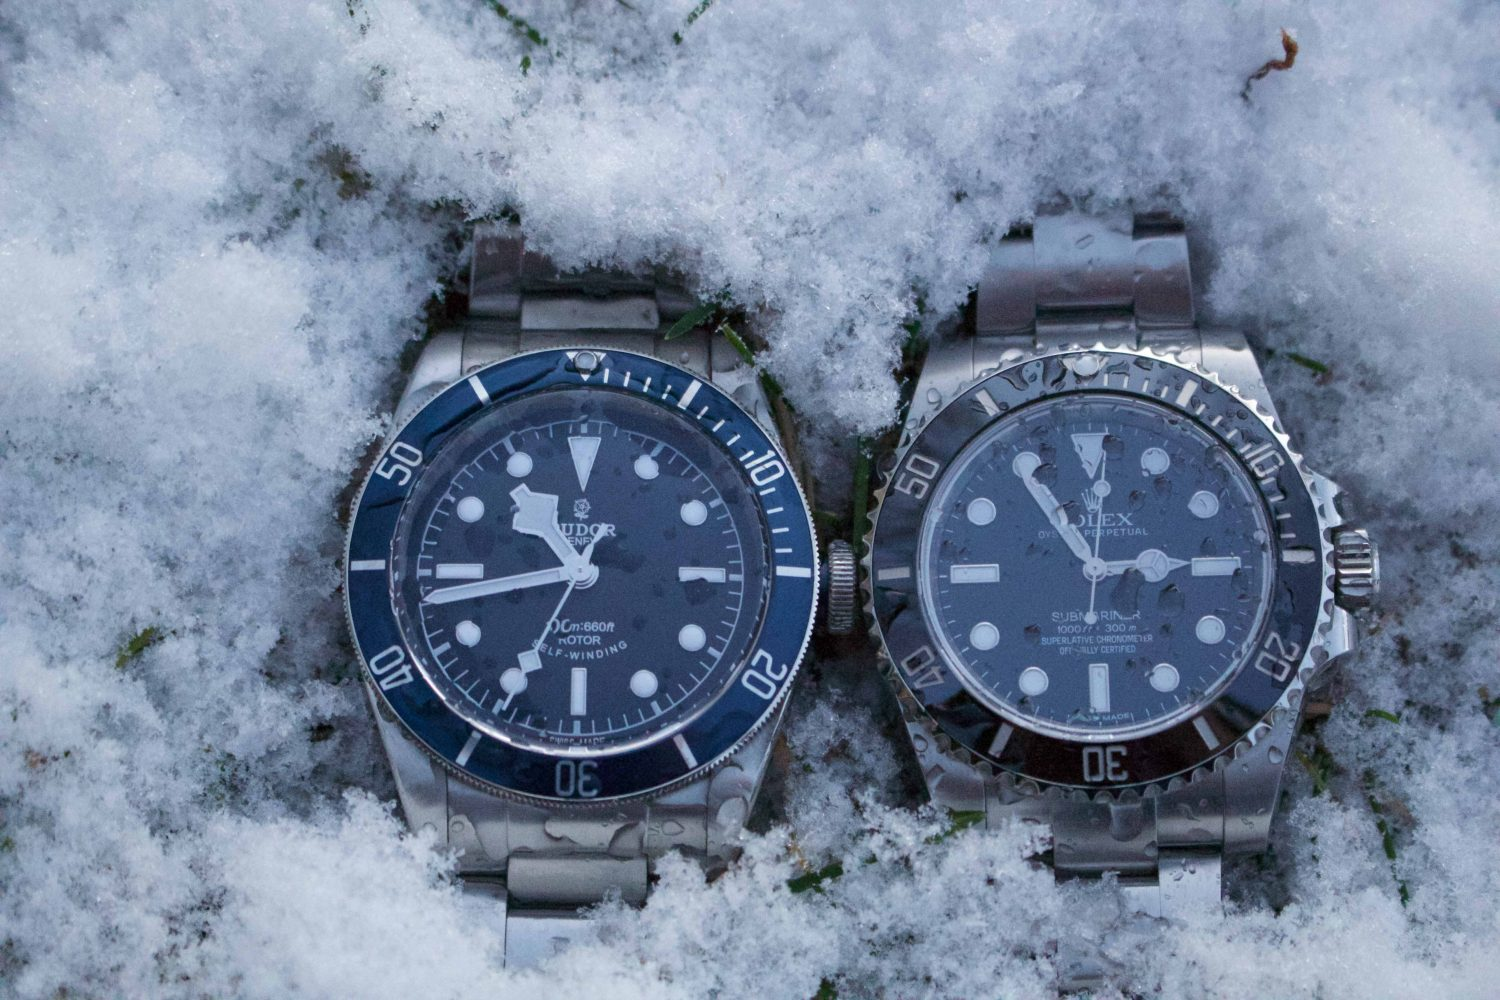 Are Tudor watches made by Rolex